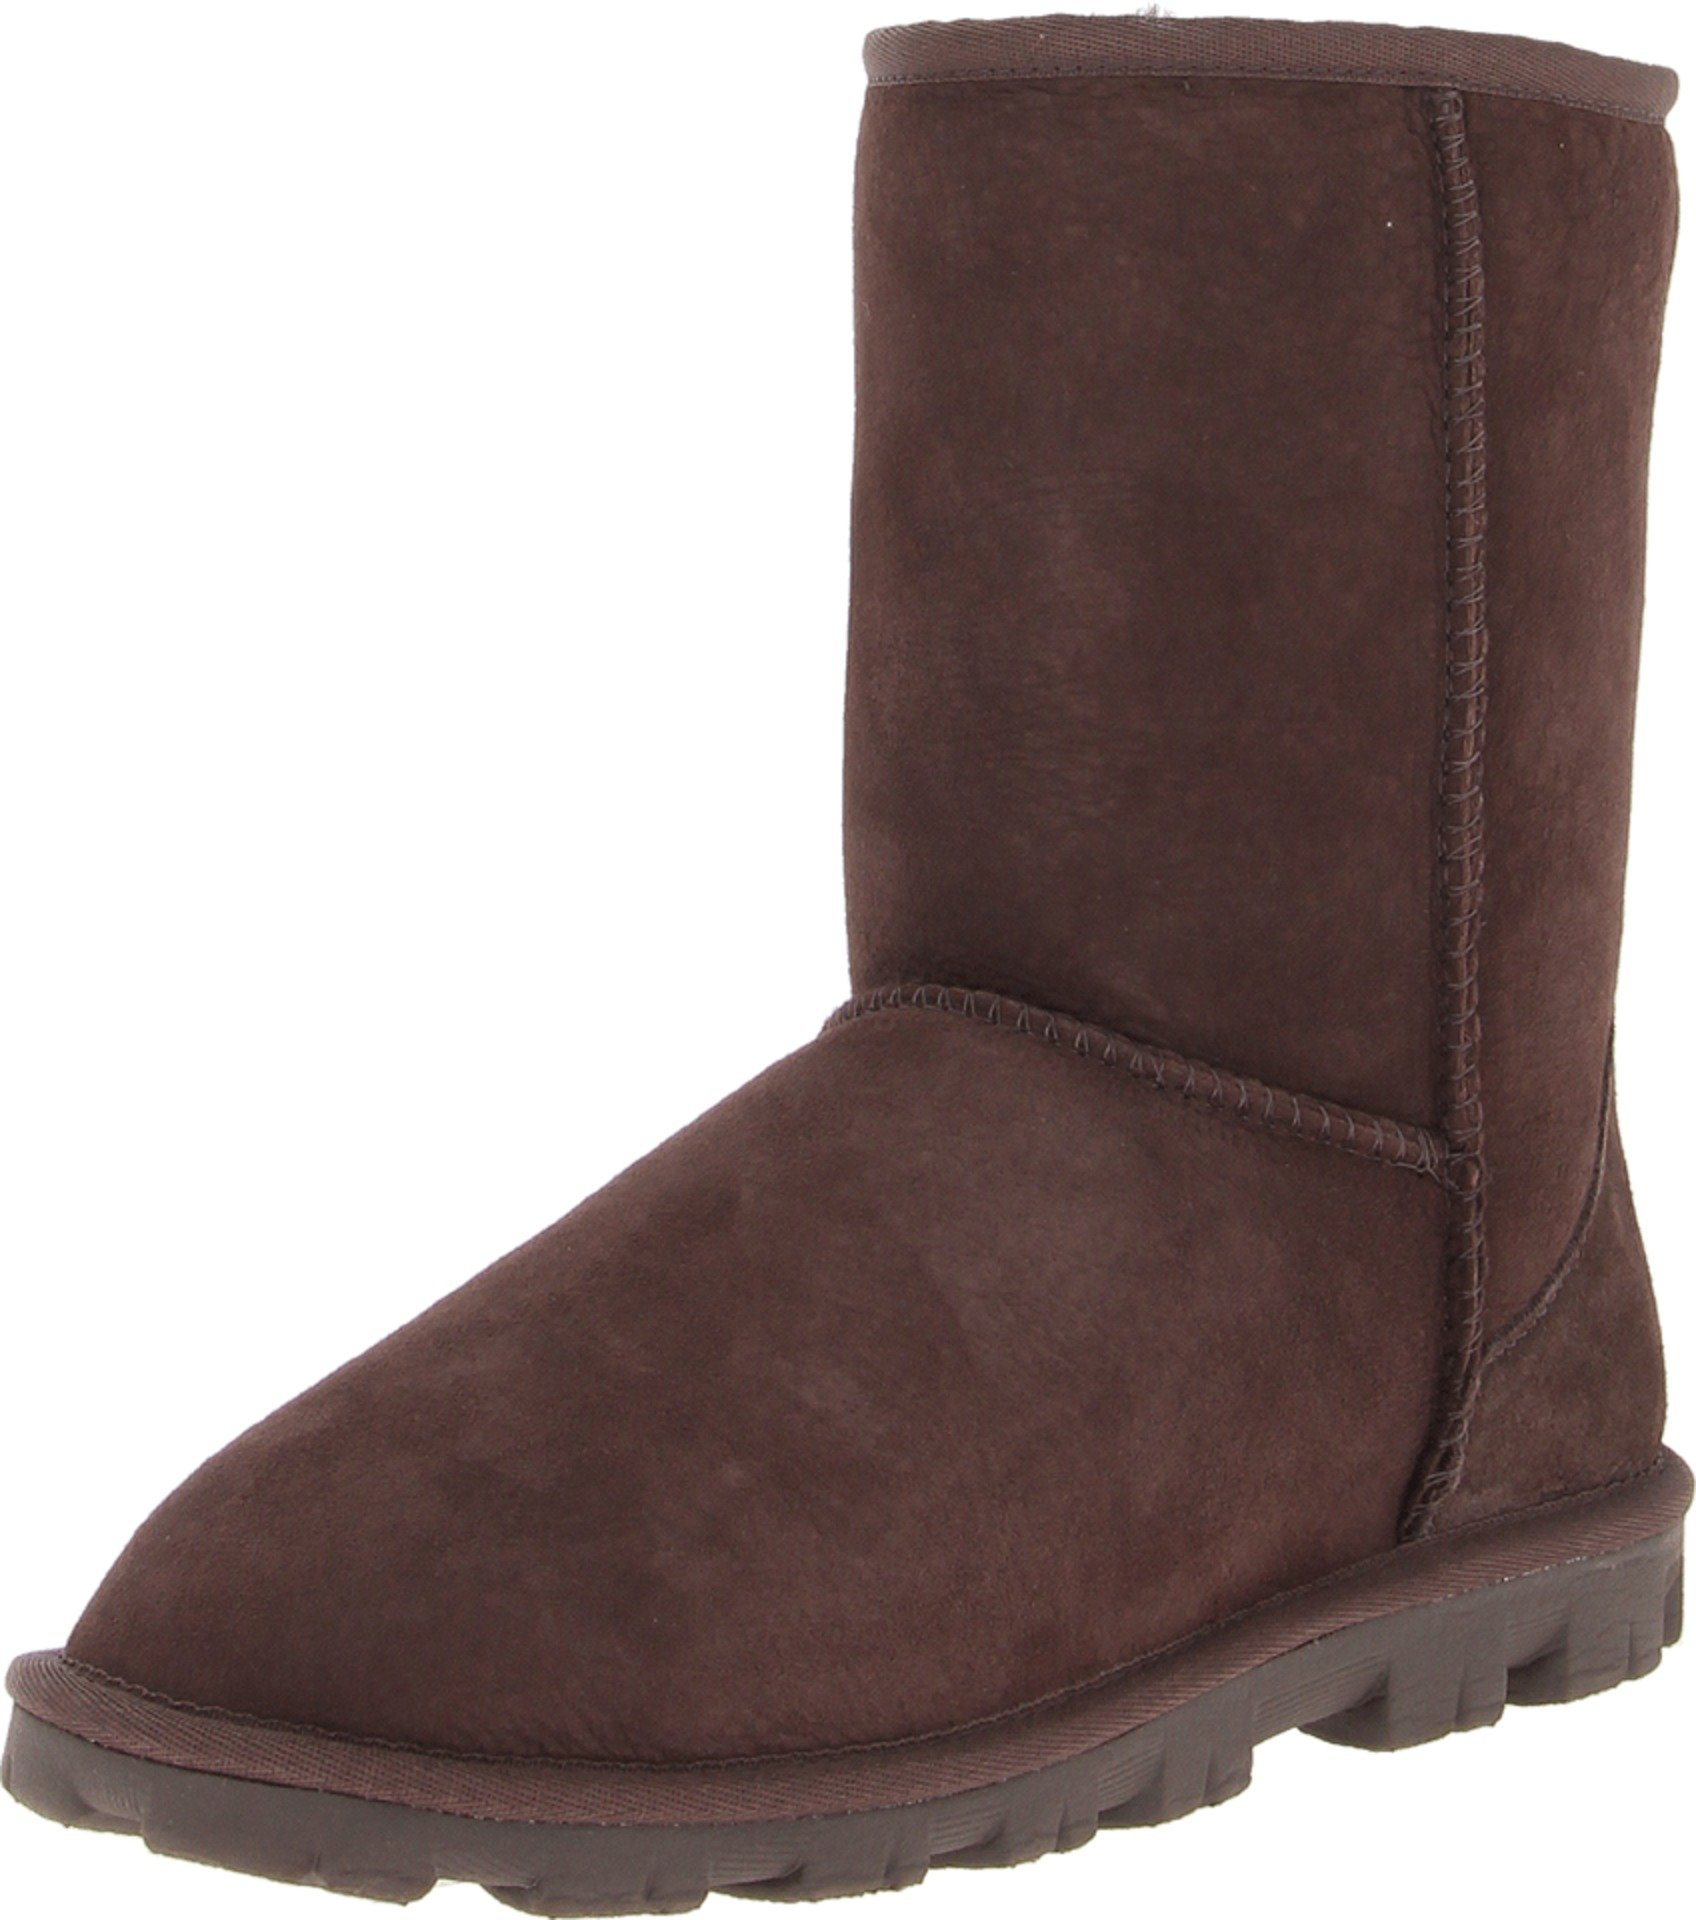 UGG Women's Essential Short Chocolate Boot 6 B - Medium by UGG